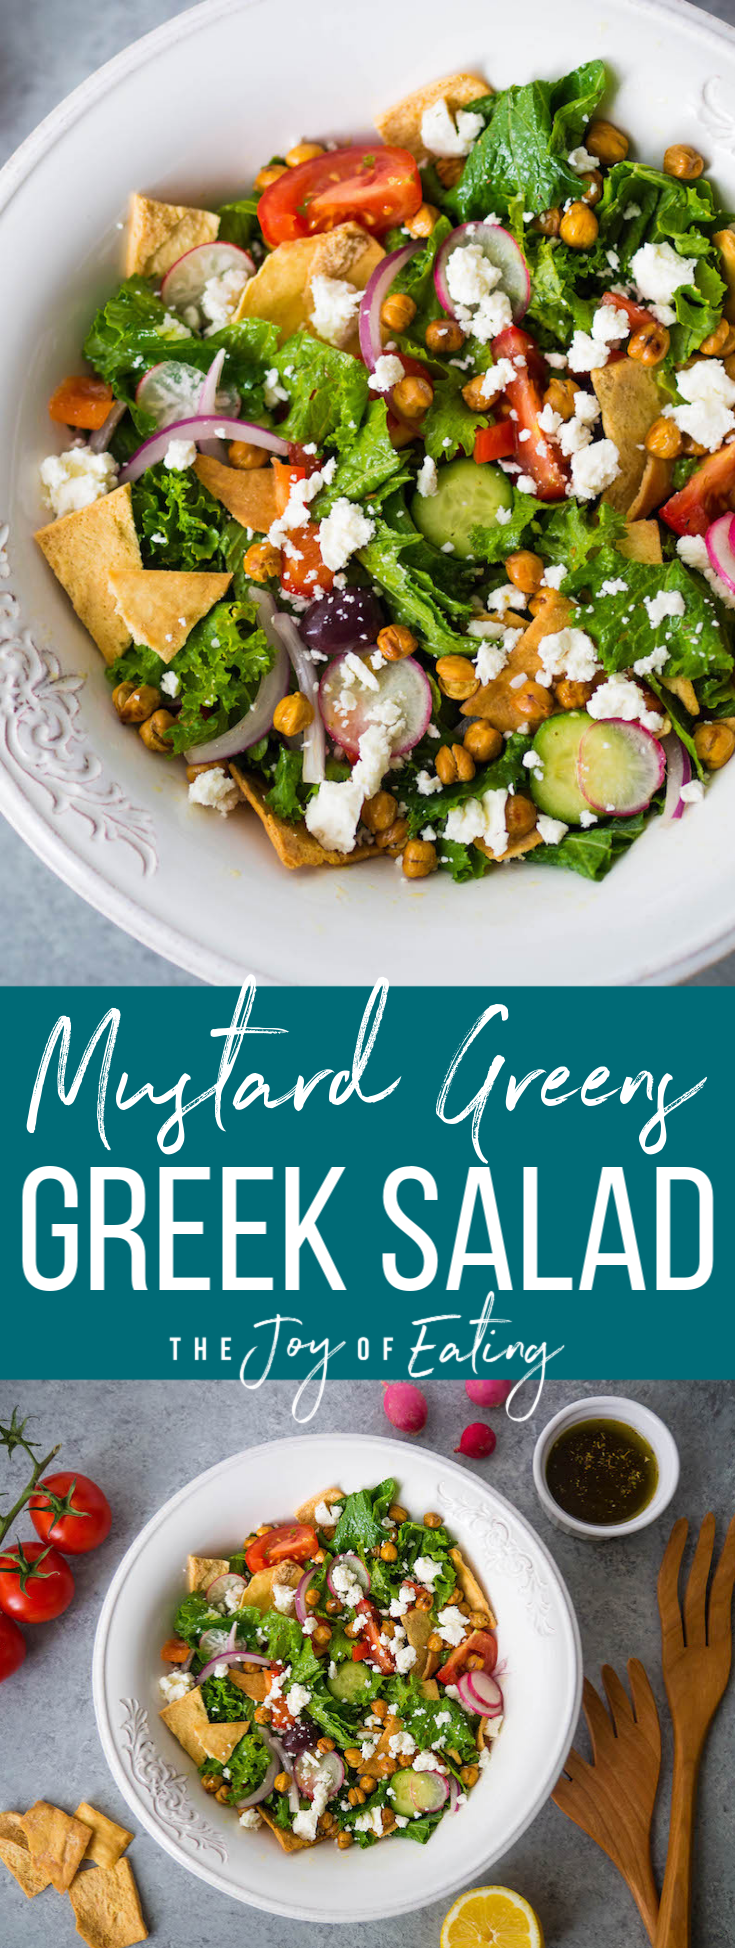 Mustard greens Greek salad with crispy roasted chickpeas and pita croutons! #mustardgreens #greeksalad #salad #vegetarian #healthyrecipe